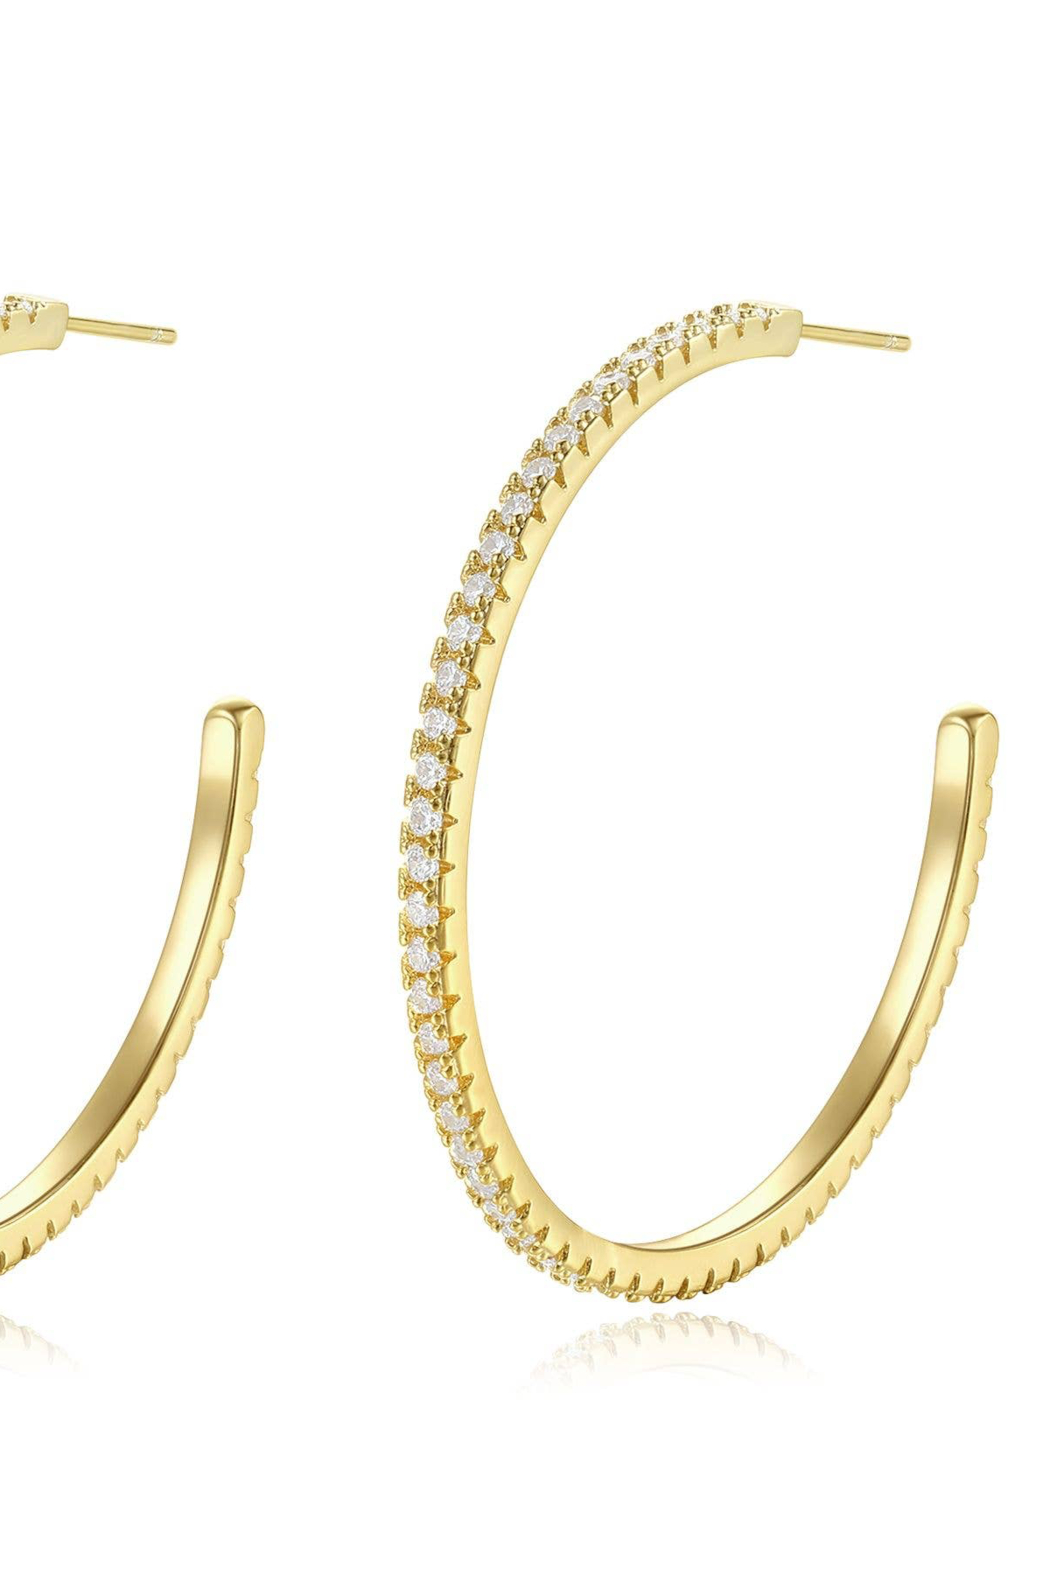 Natalie Mills Elena Crystal Earrings - Front Cropped Image